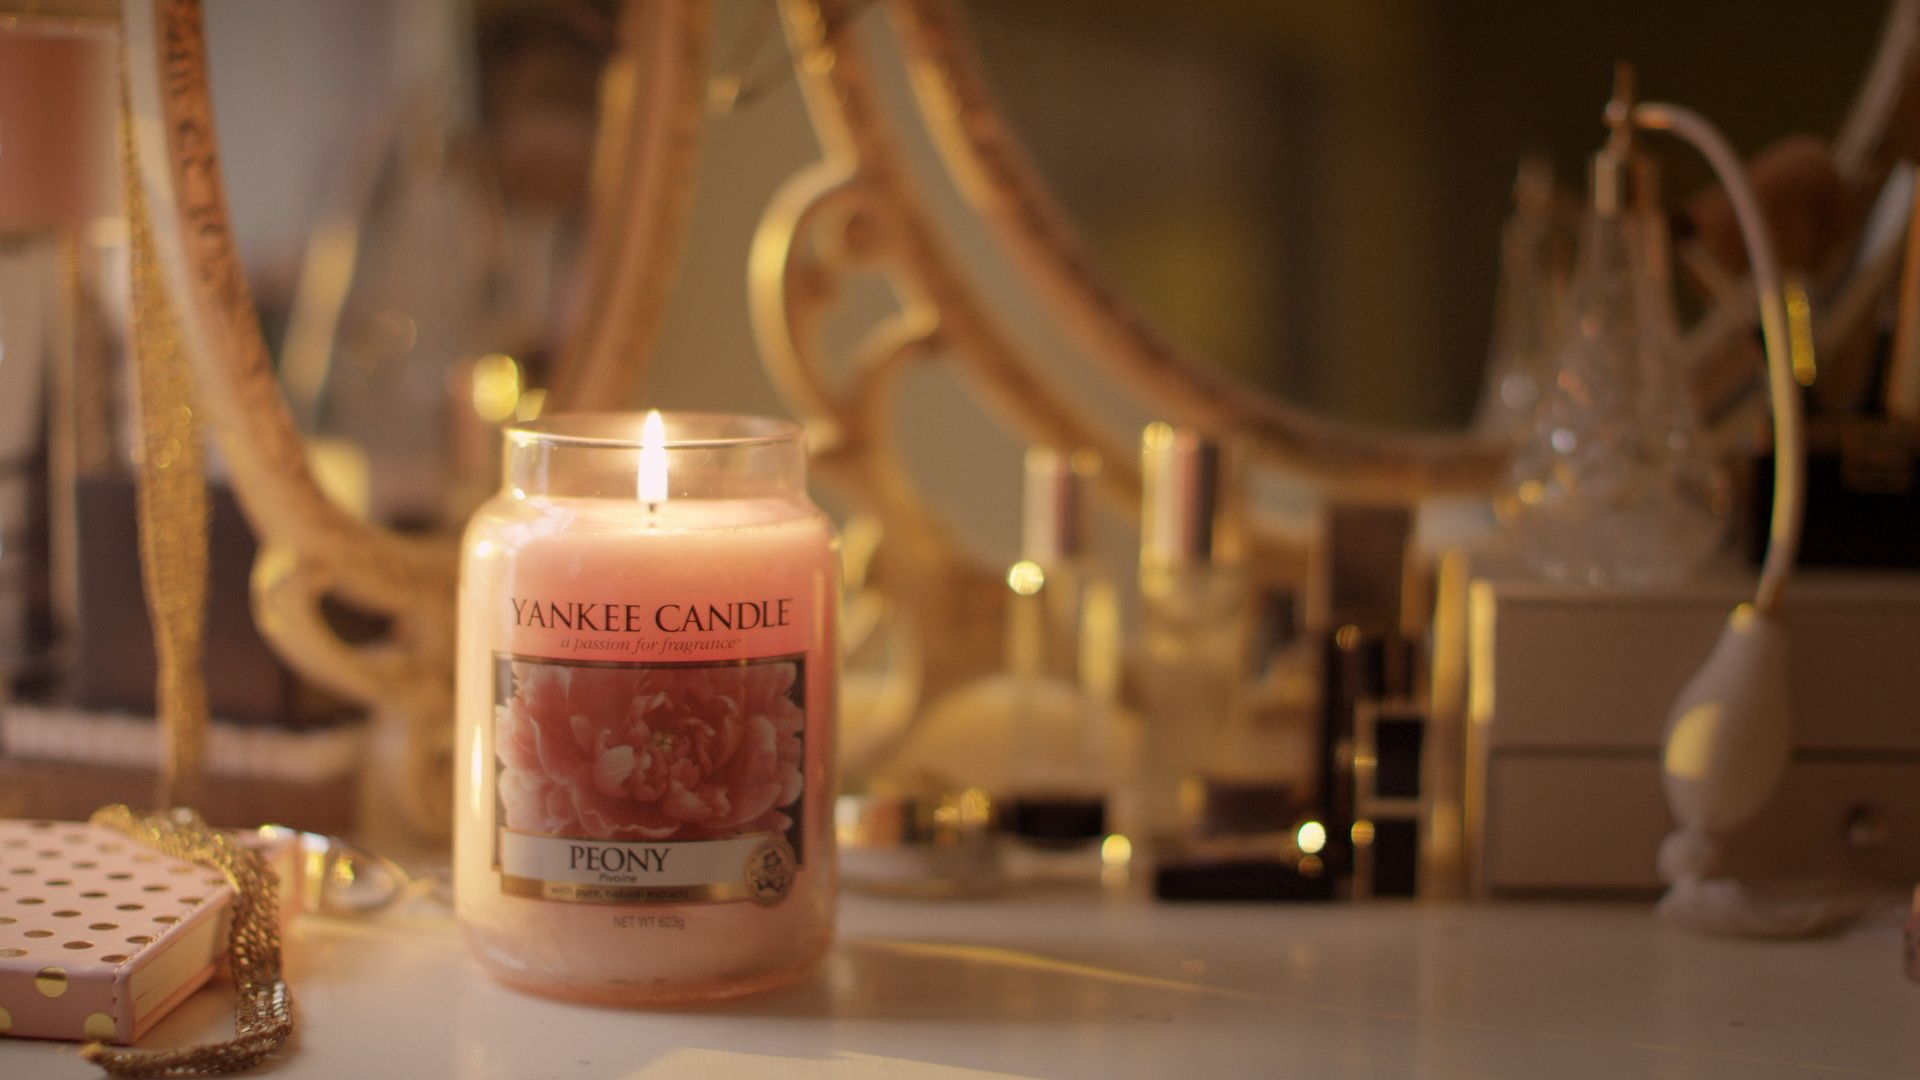 Peony is a welcoming fragrance perfect for greeting guest as you